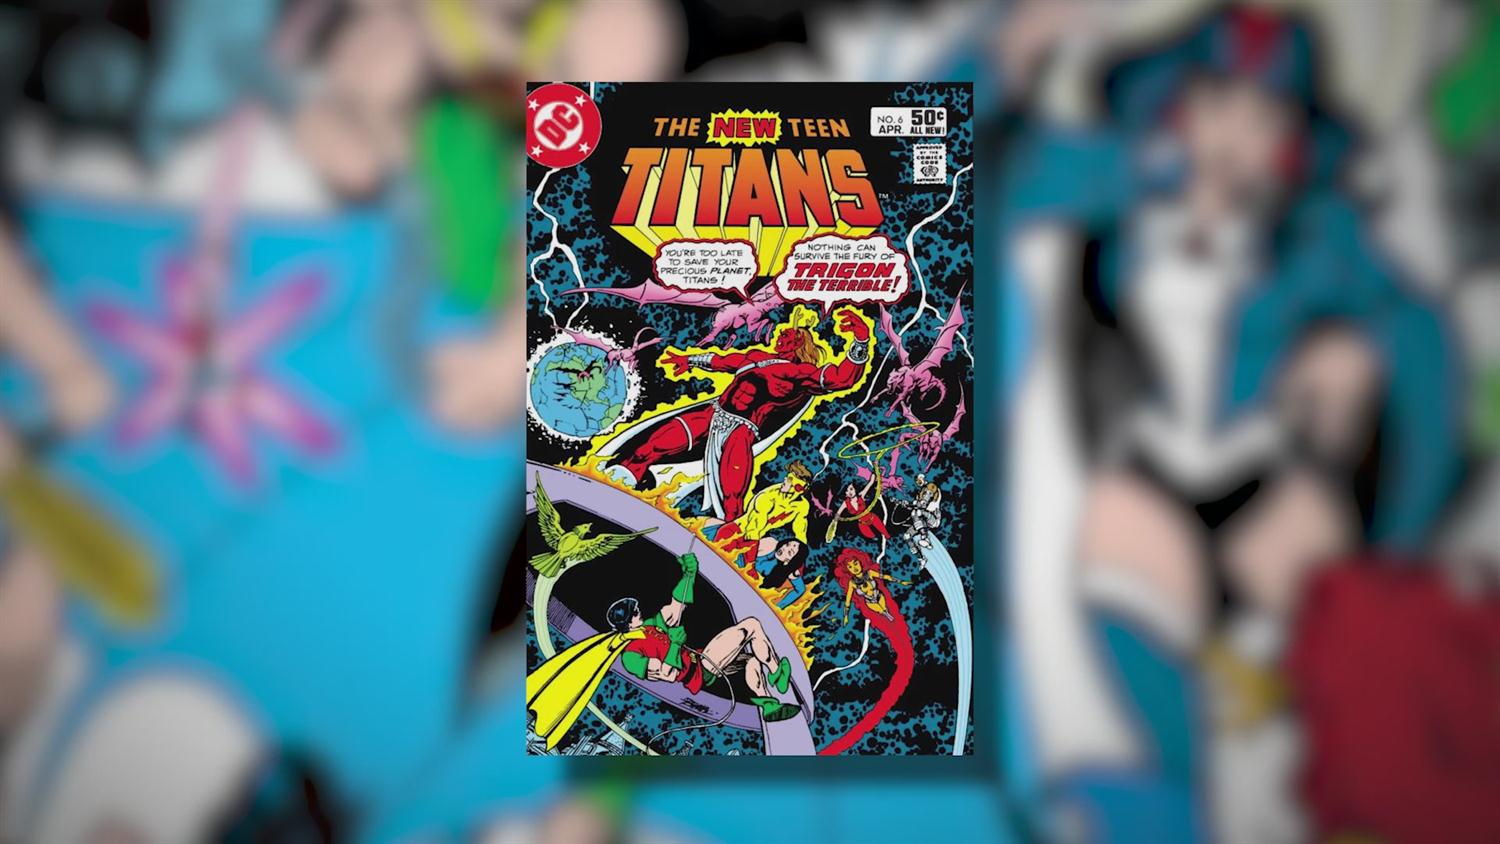 George Perez Speaks Out On The Titans Live Action TV Show